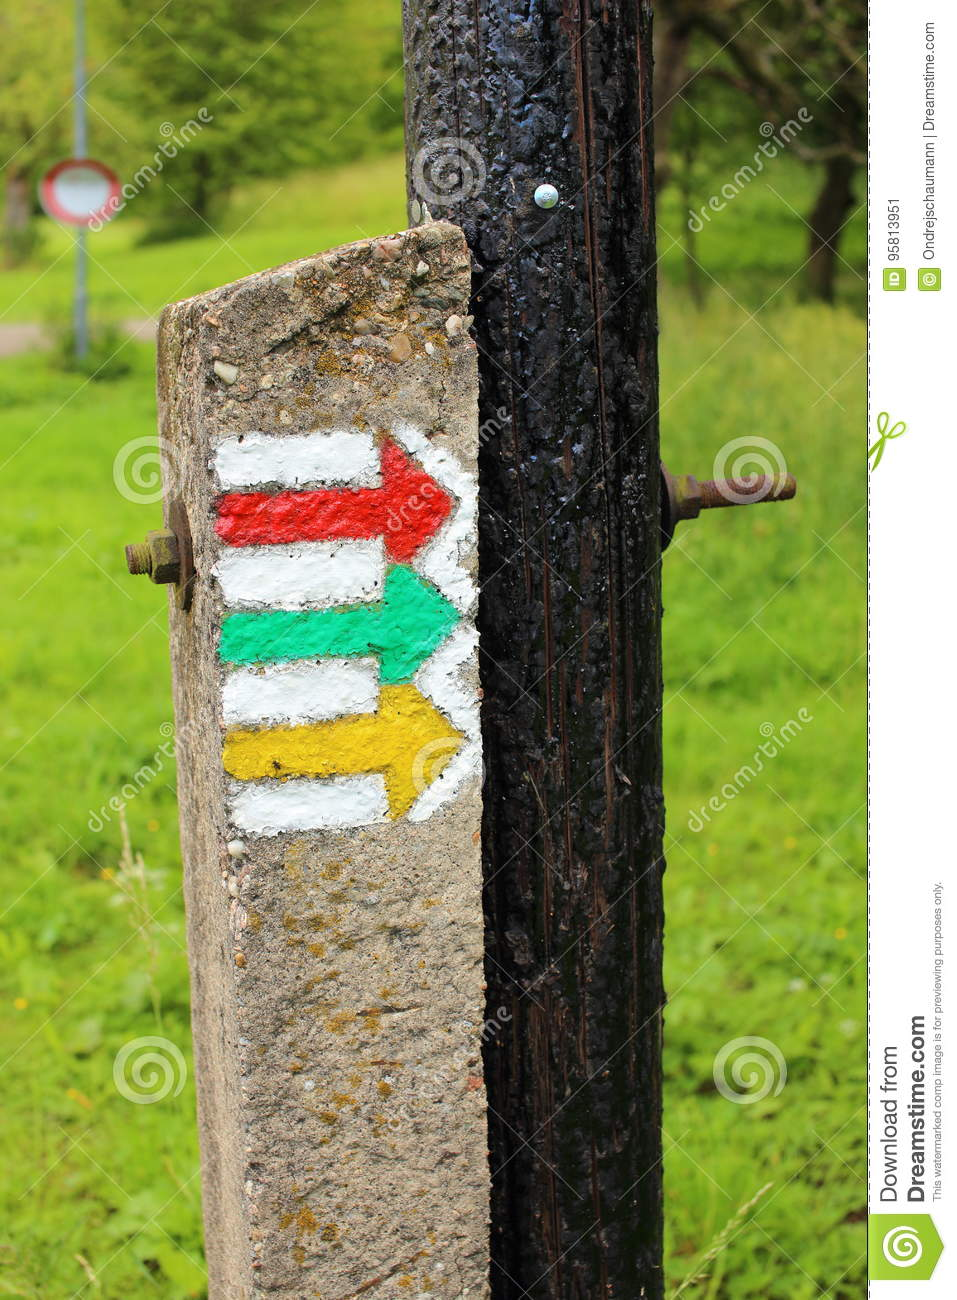 Red green and yellow tourist track signs on the electric pole grounding